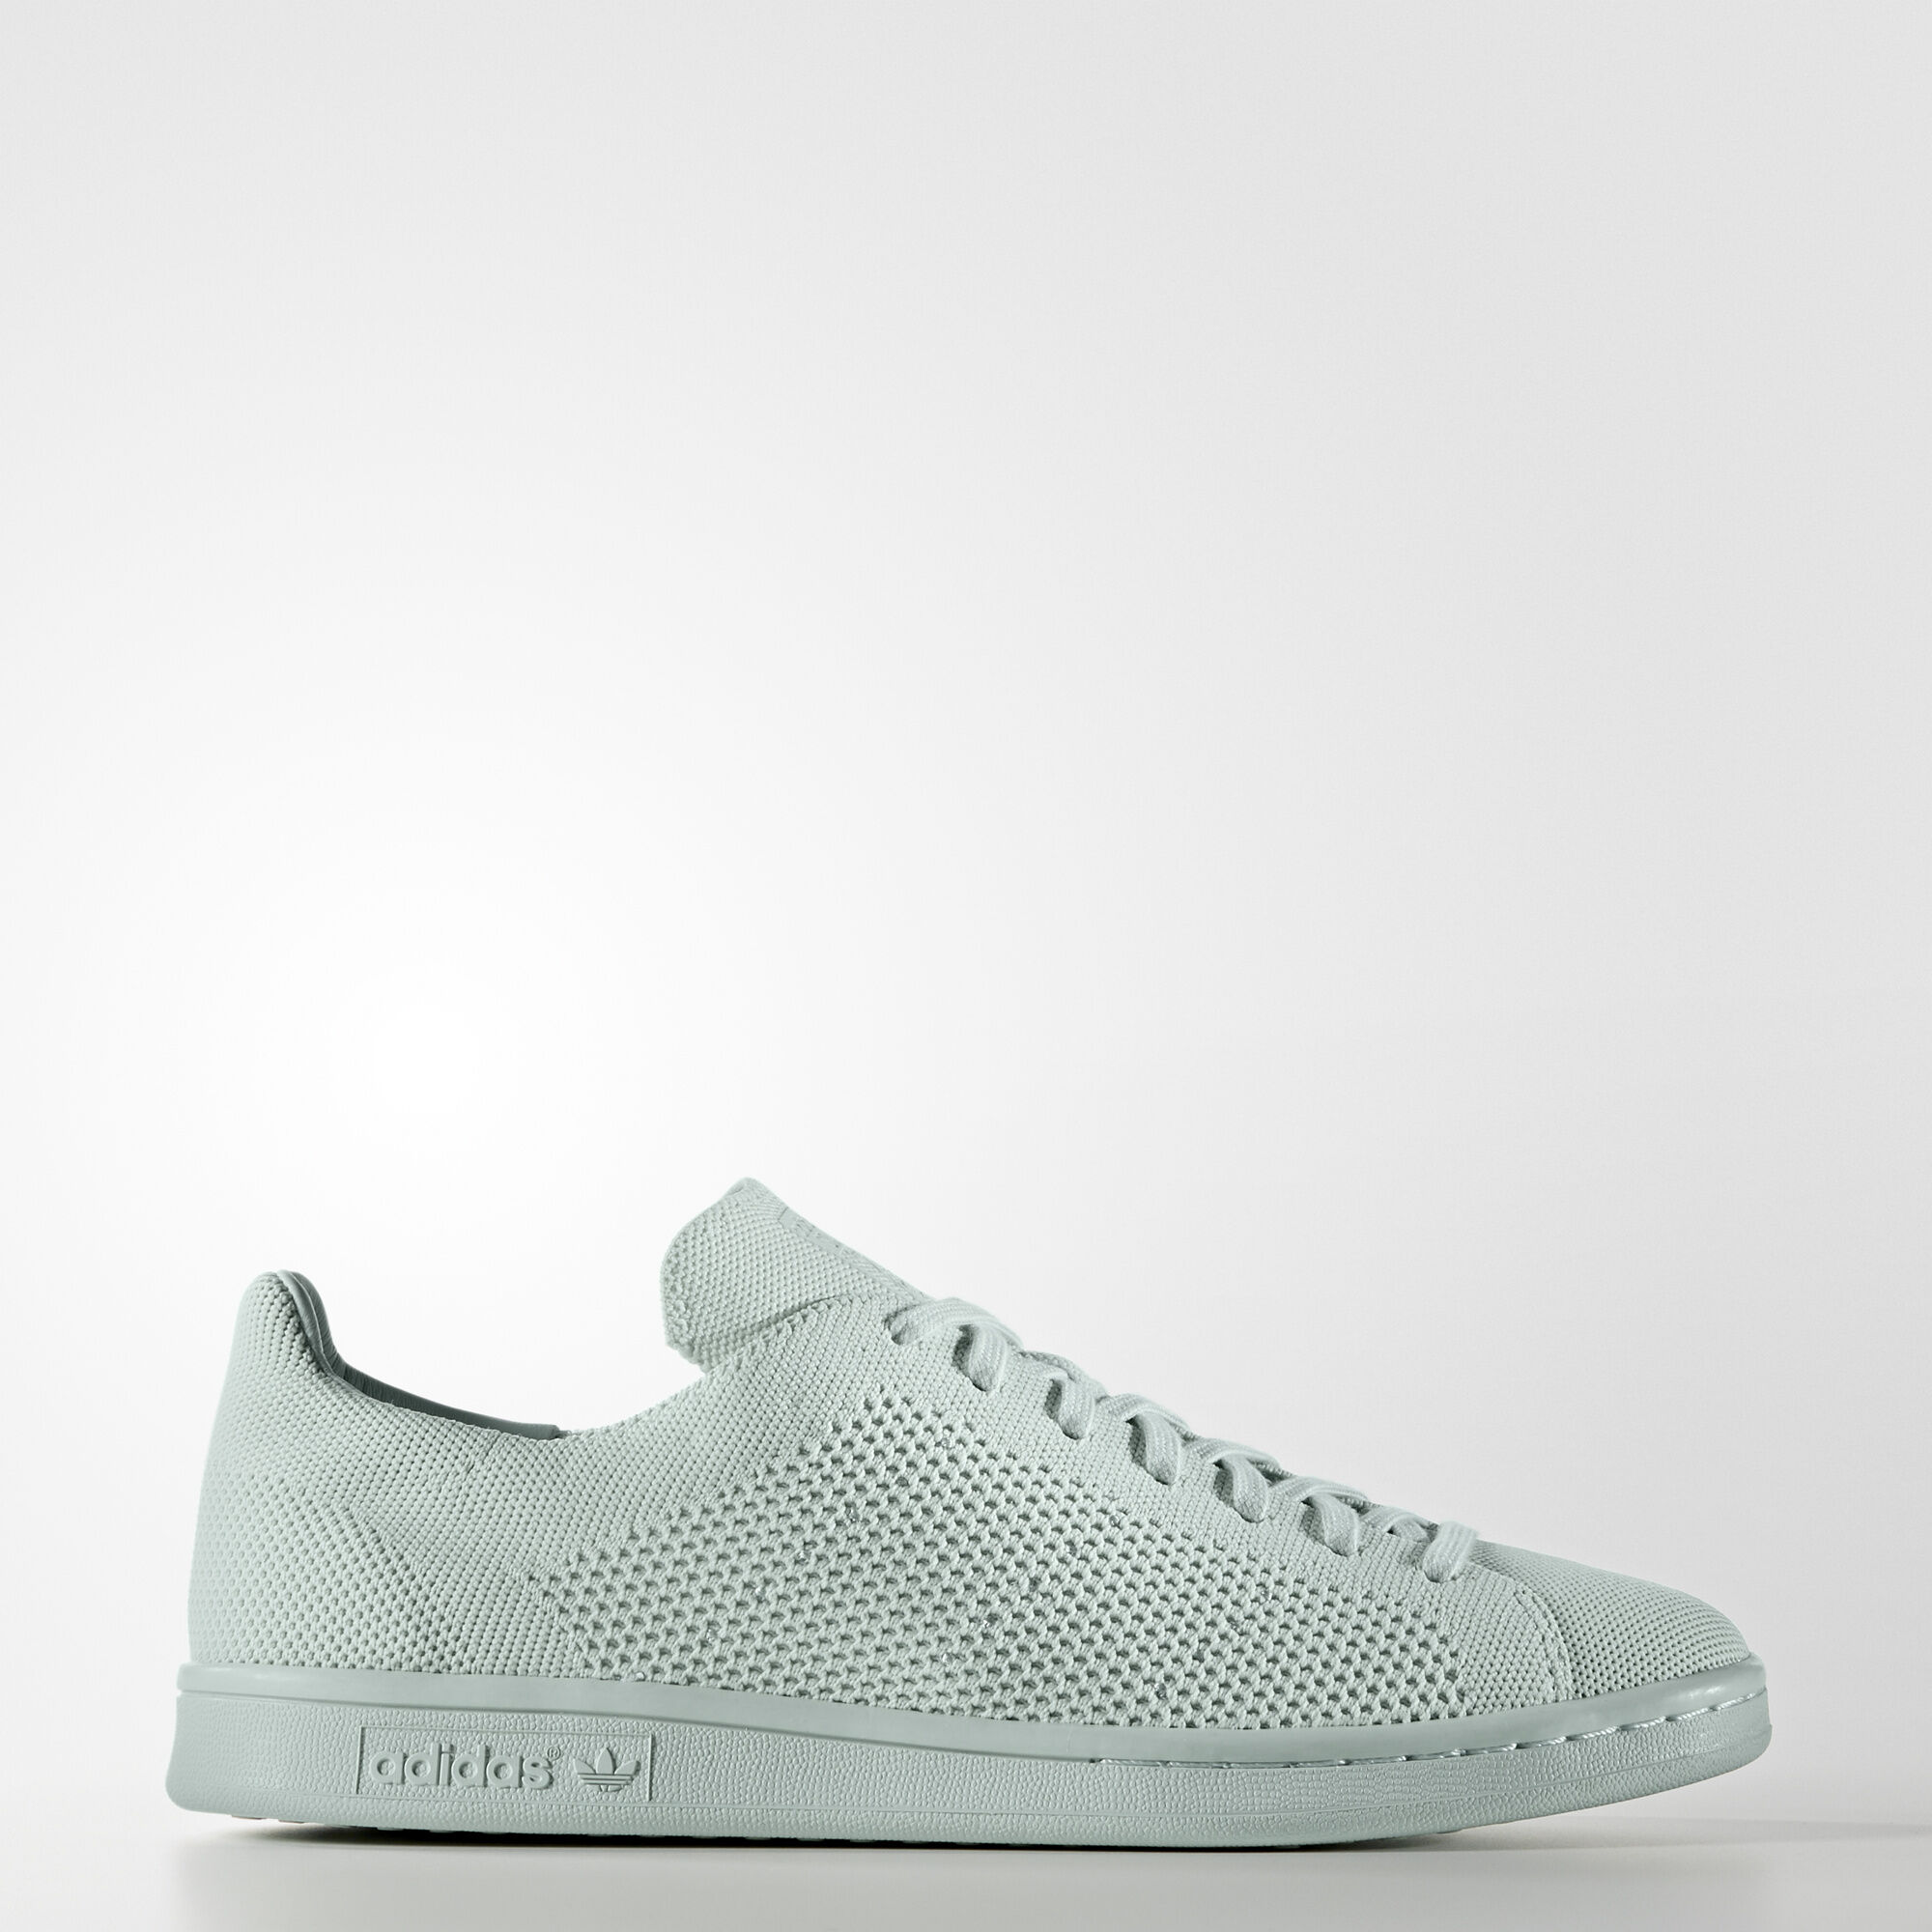 adidas stan smith high